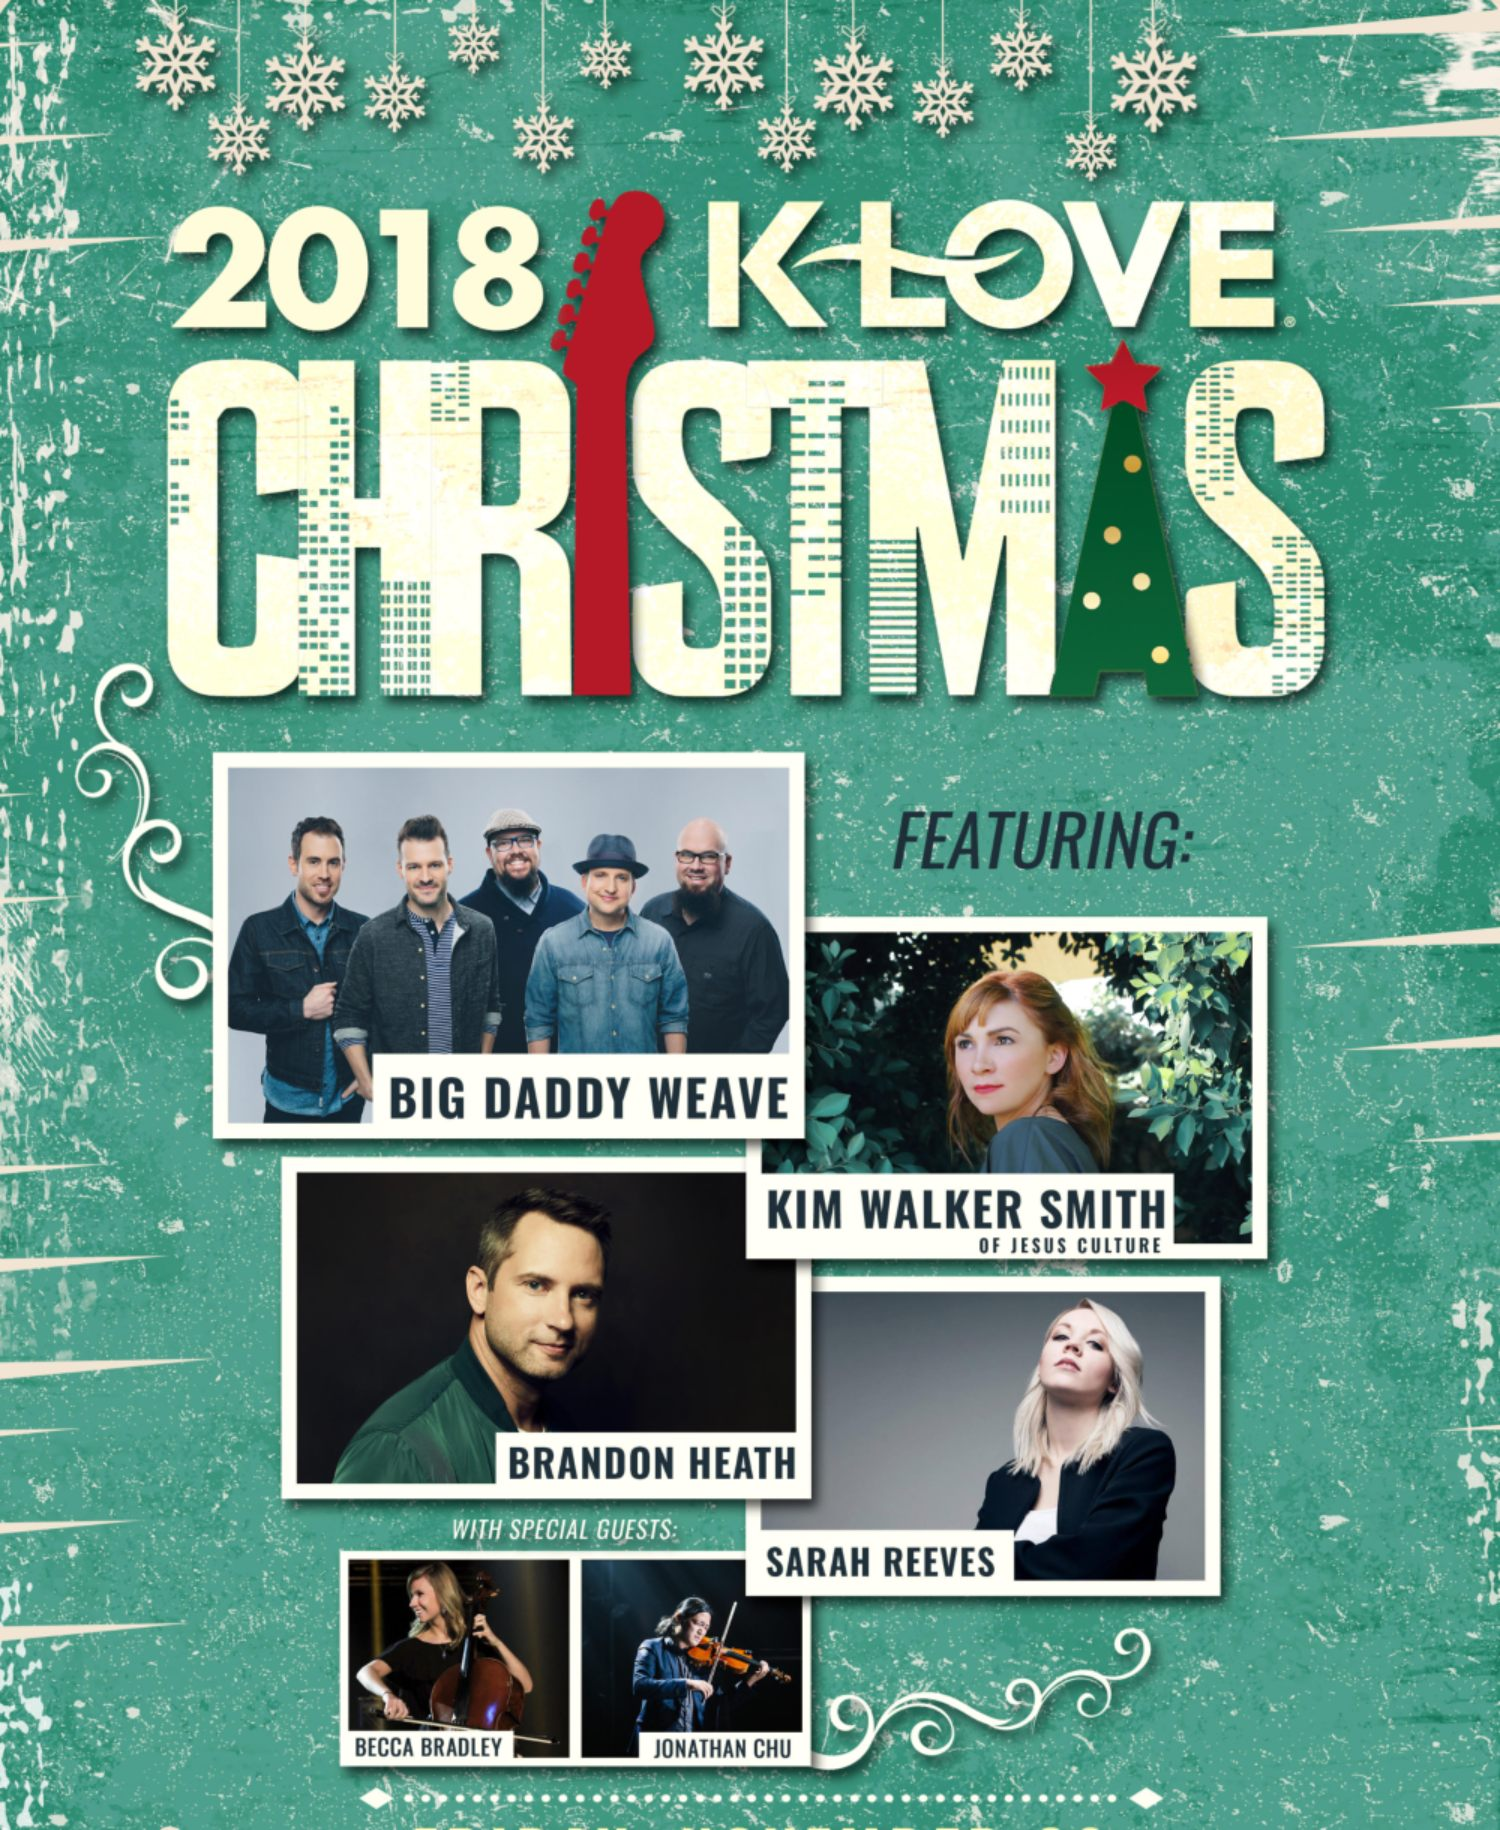 Image for KLOVE CHRISTMAS TOUR feat. Big Daddy Weave, Kim Walker Smith, Brandon Heath, Sarah Reeves, Becca Bradley & Jonathan Chu